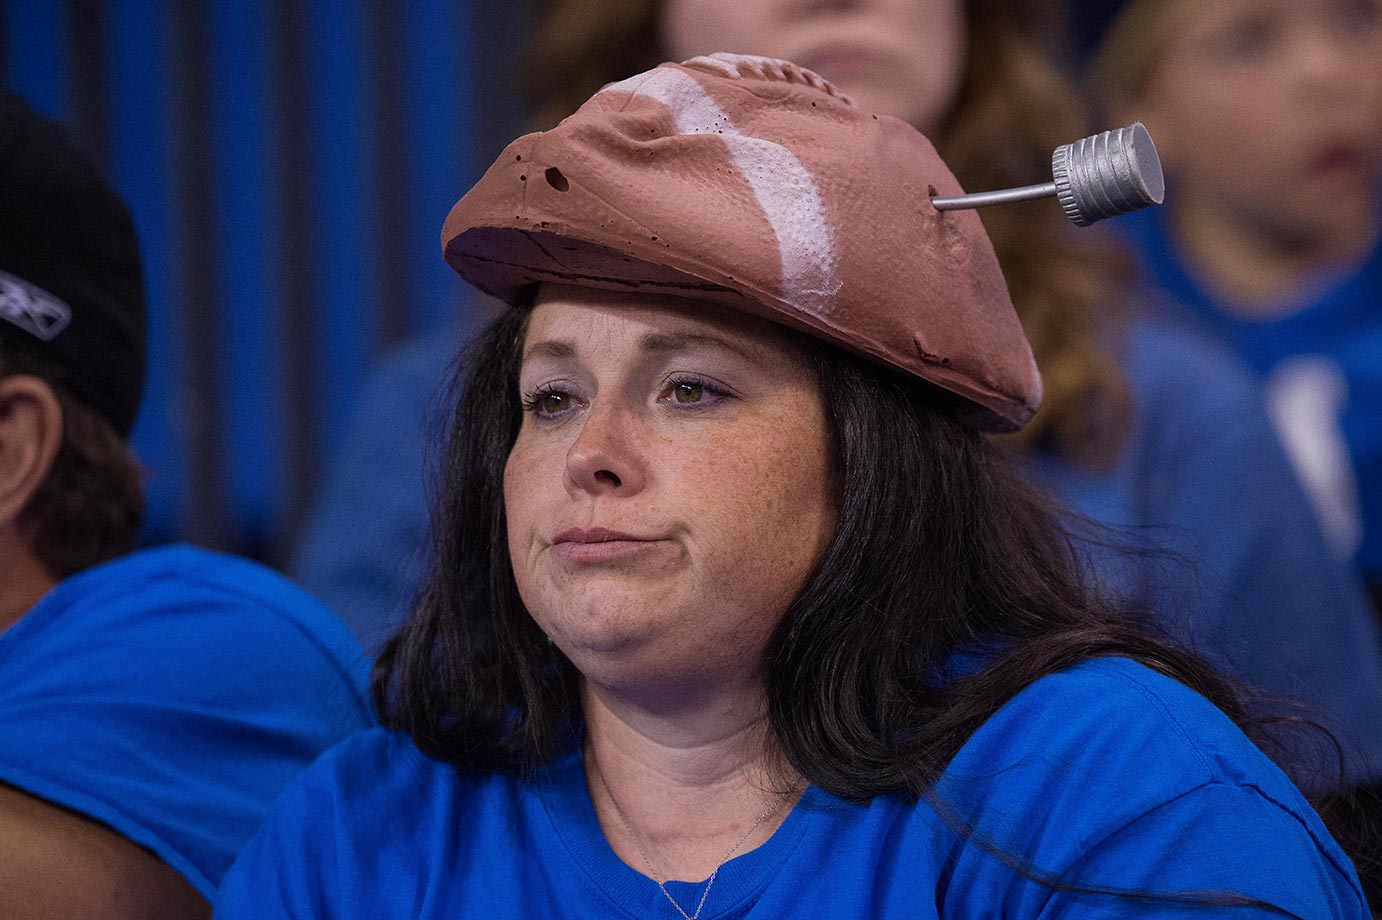 An Indianapolis Colts fan wasn't very happy about losing to the Patriots.